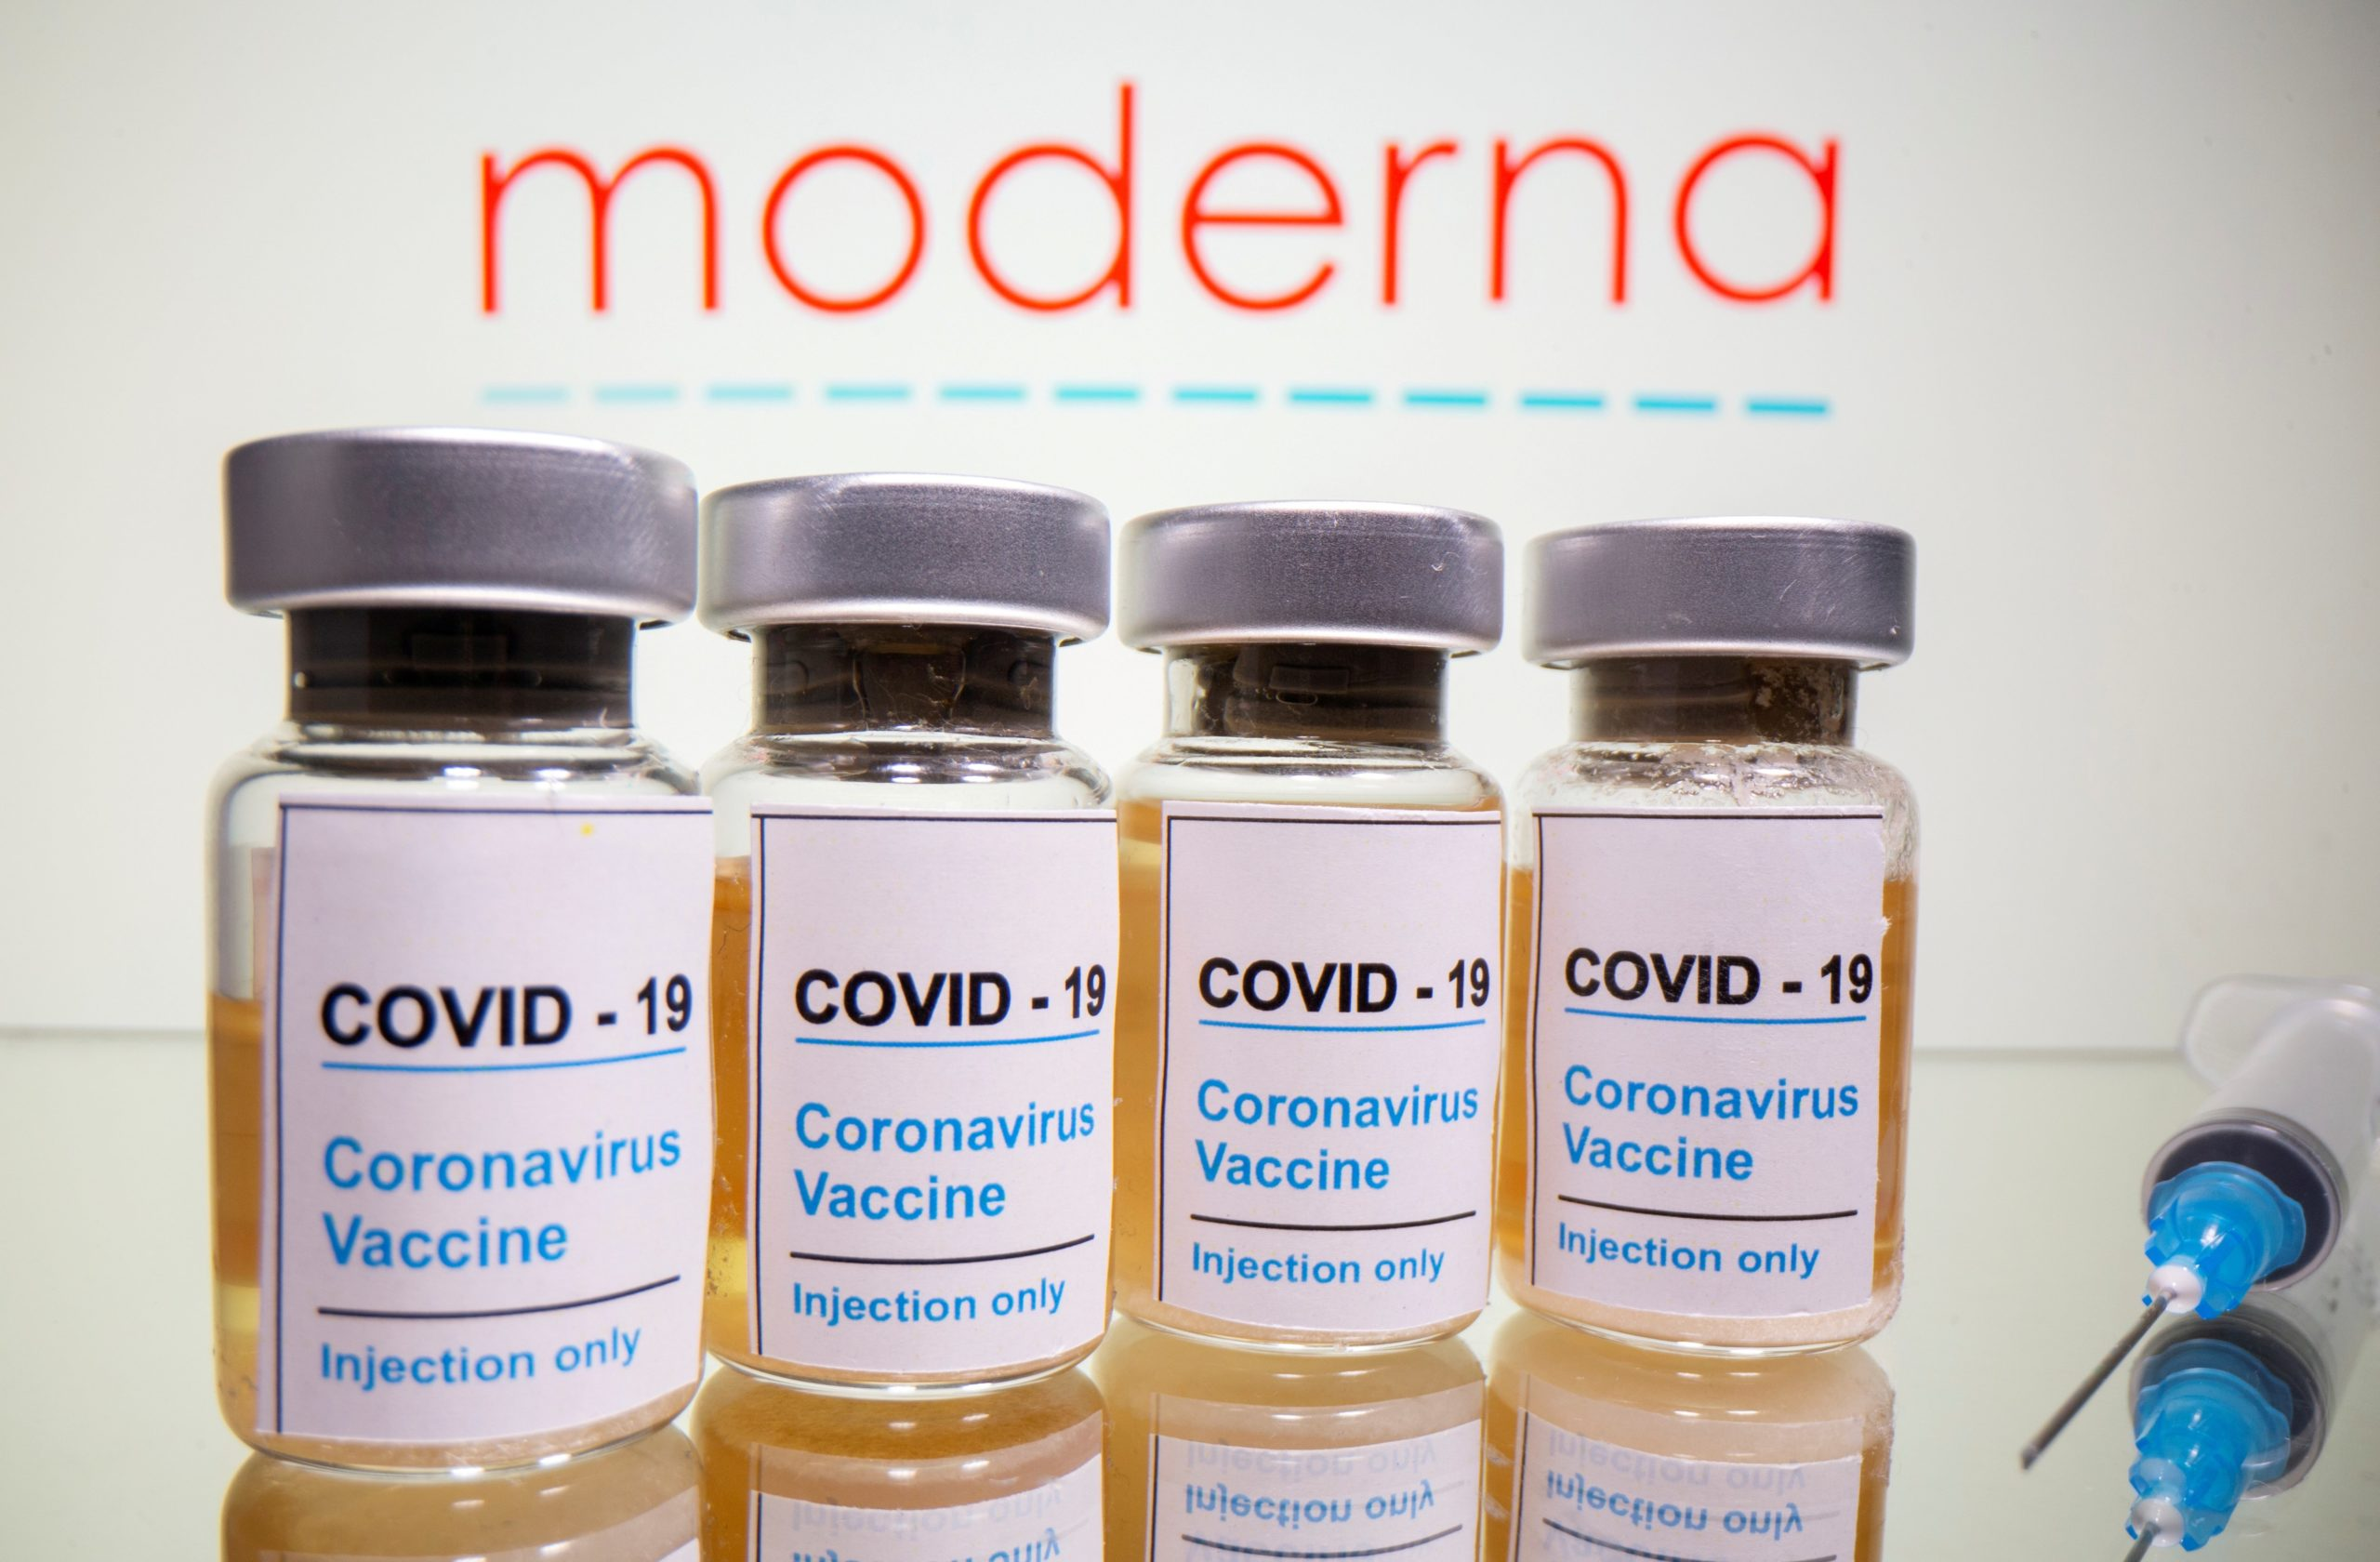 Tata in Talks To Launch Moderna COVID-19 Vaccine in India – The Wire Science